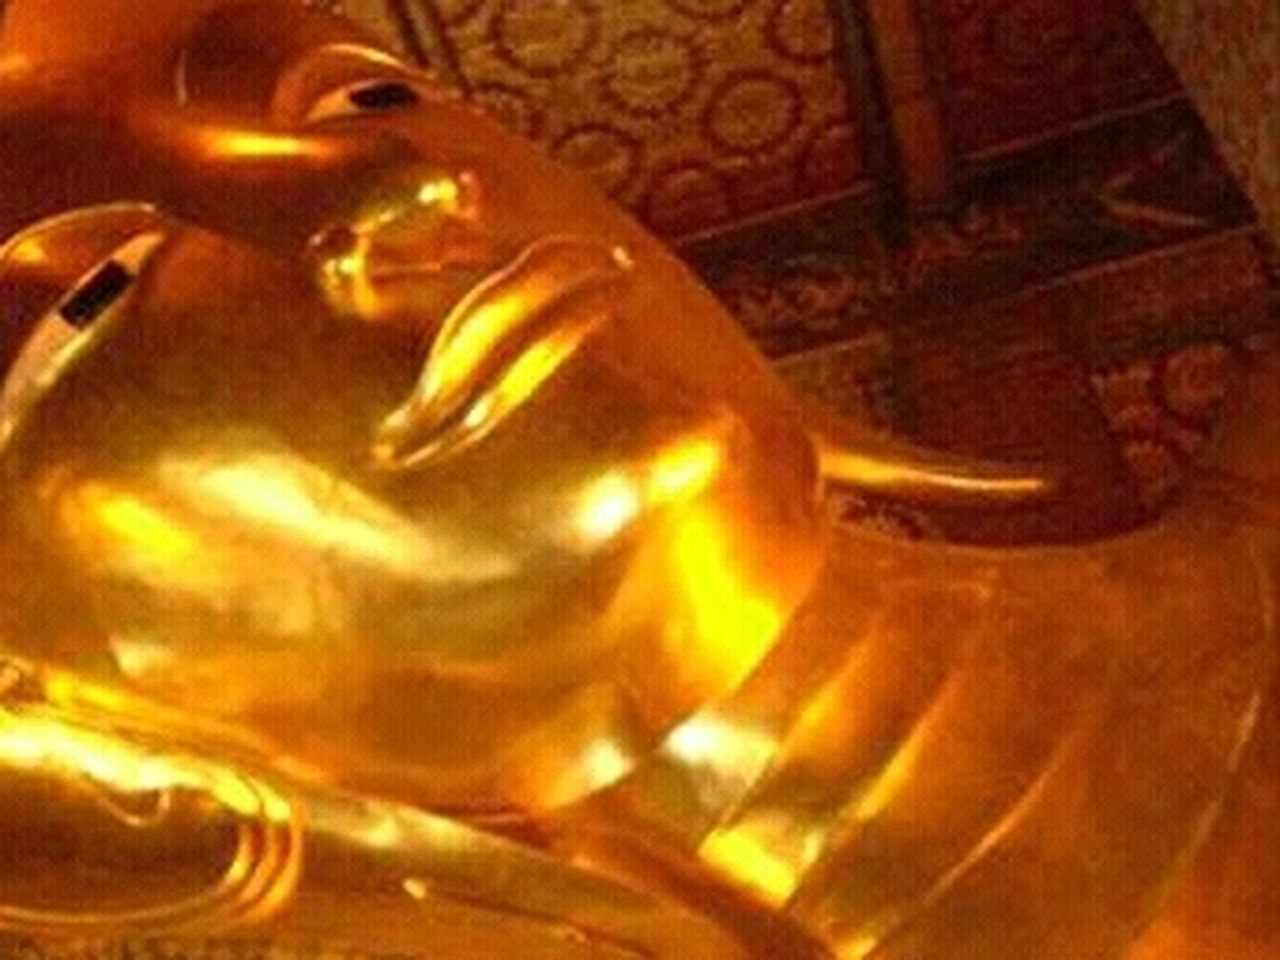 indoors, gold colored, no people, close-up, statue, sculpture, golden color, illuminated, day